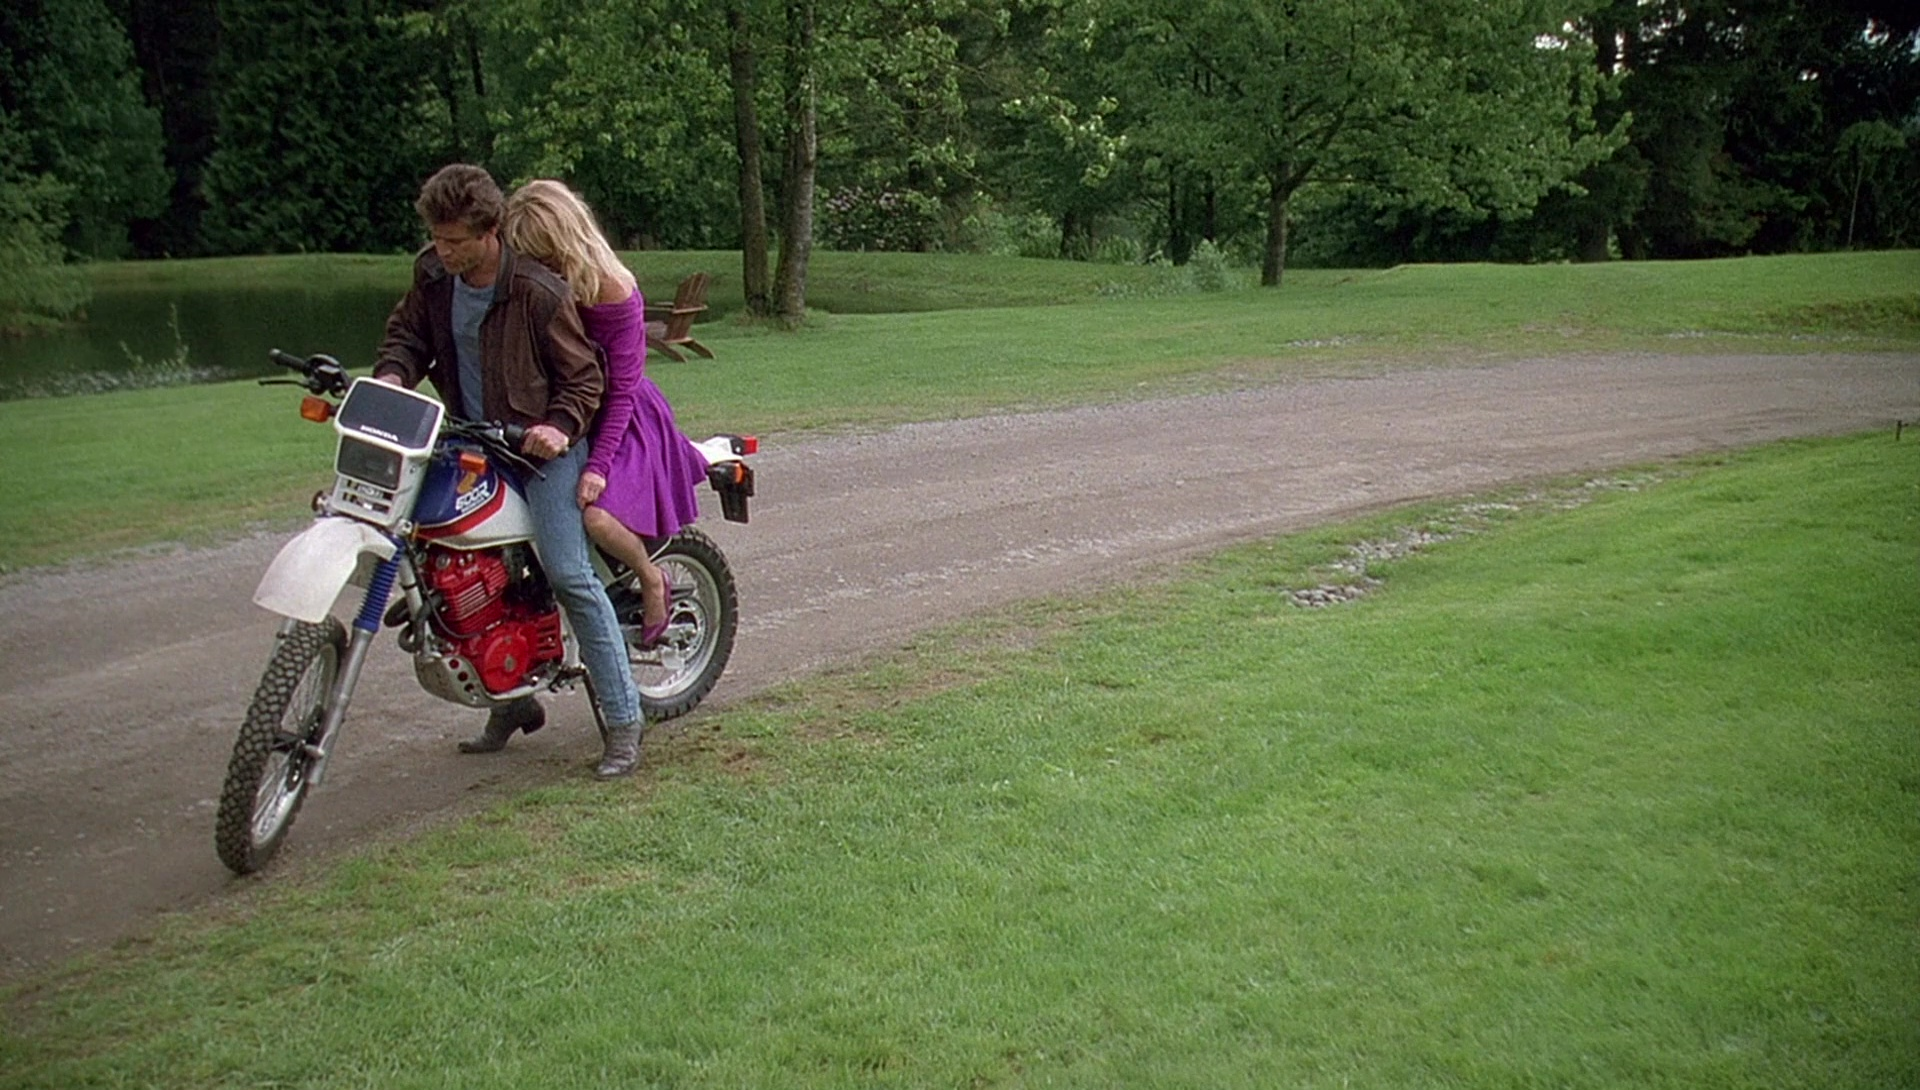 Honda Xl 600 R Motorcycle Driven By Mel Gibson In Bird On A Wire 1990 Movie Scenes